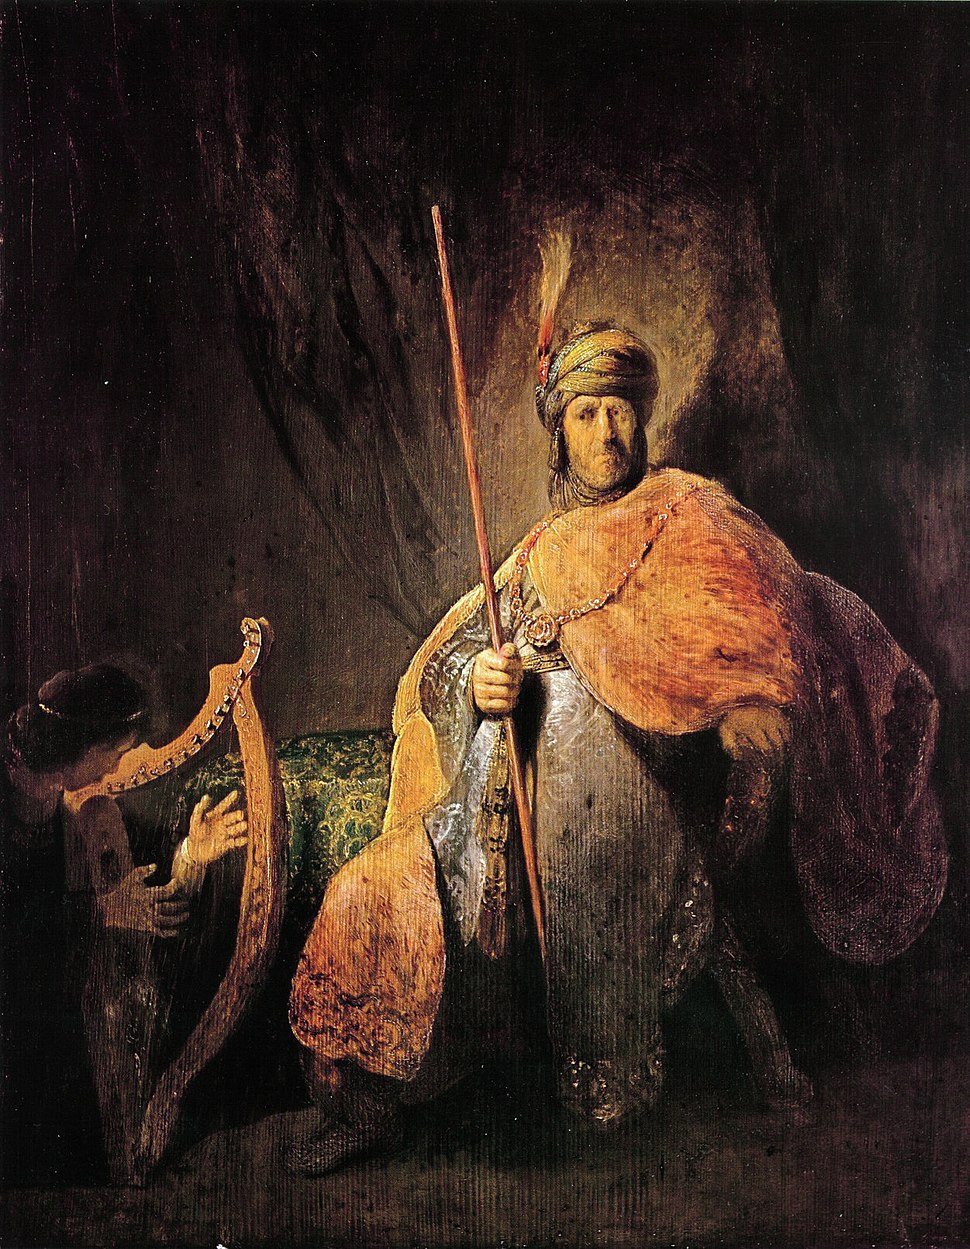 Saul and David rembrandt